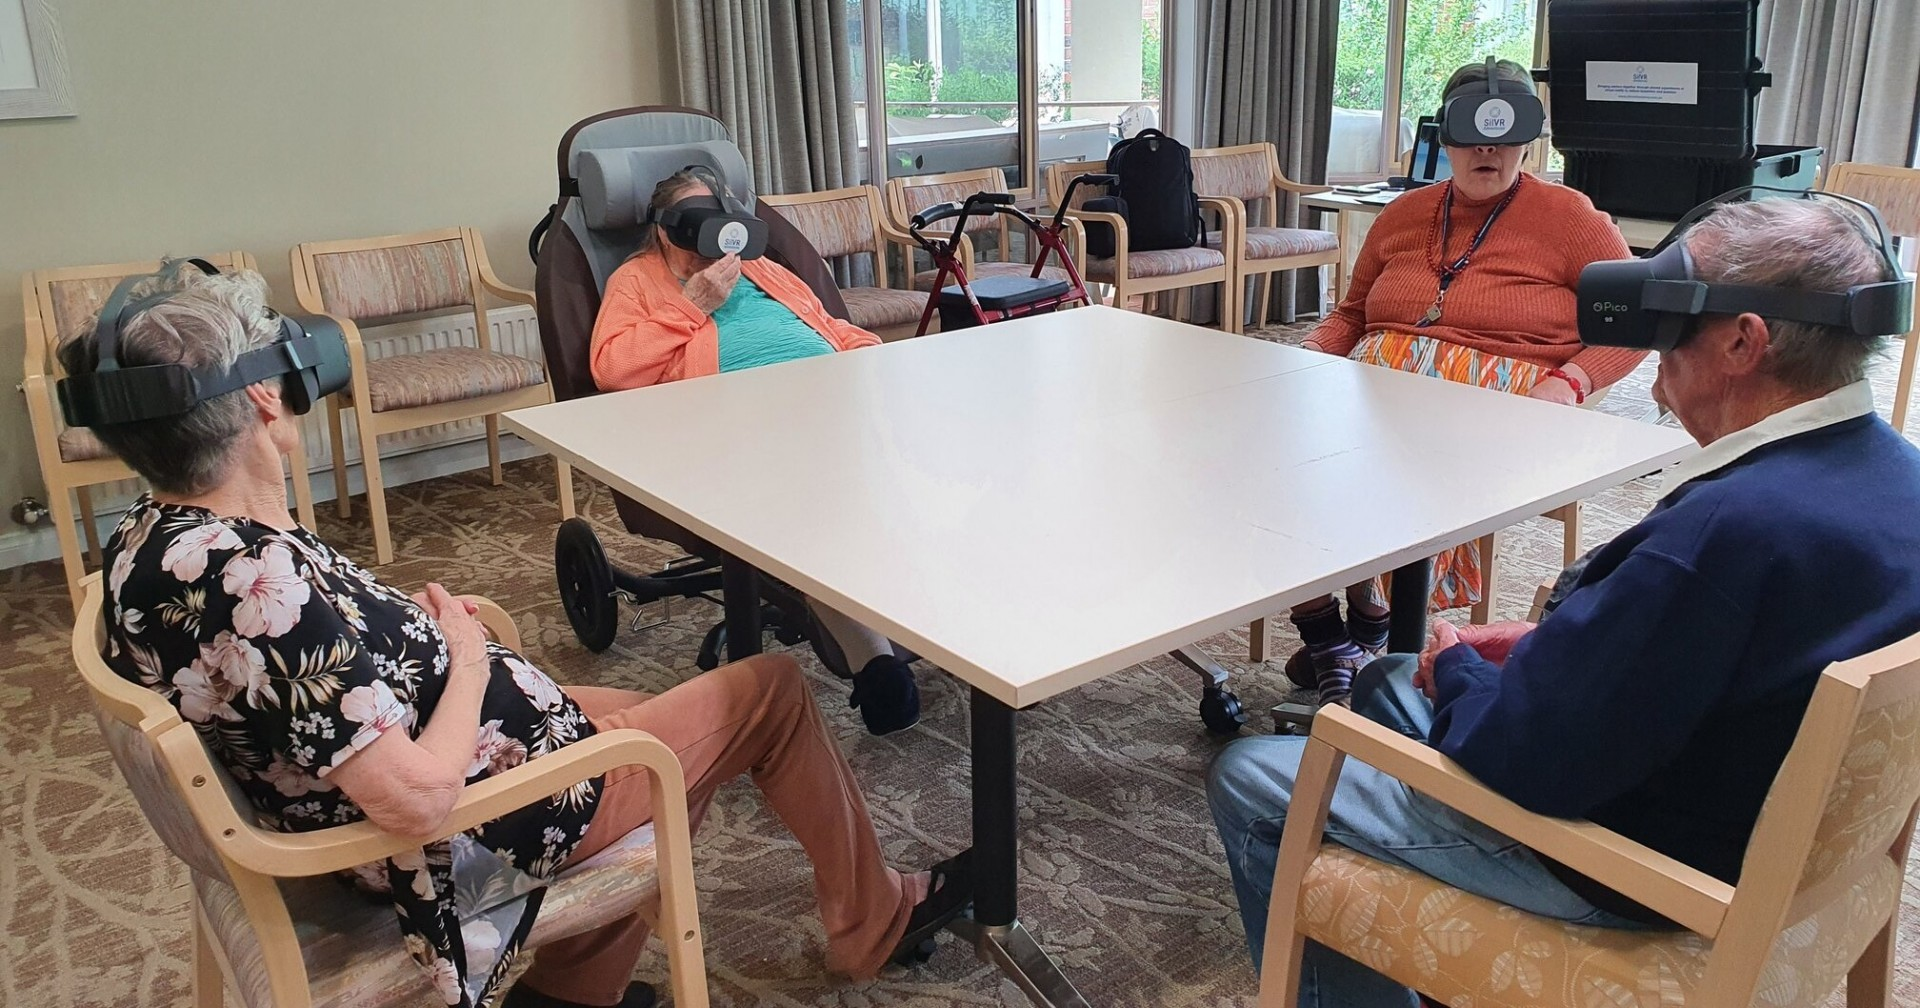 Travelling The World With VR (Daily Care)